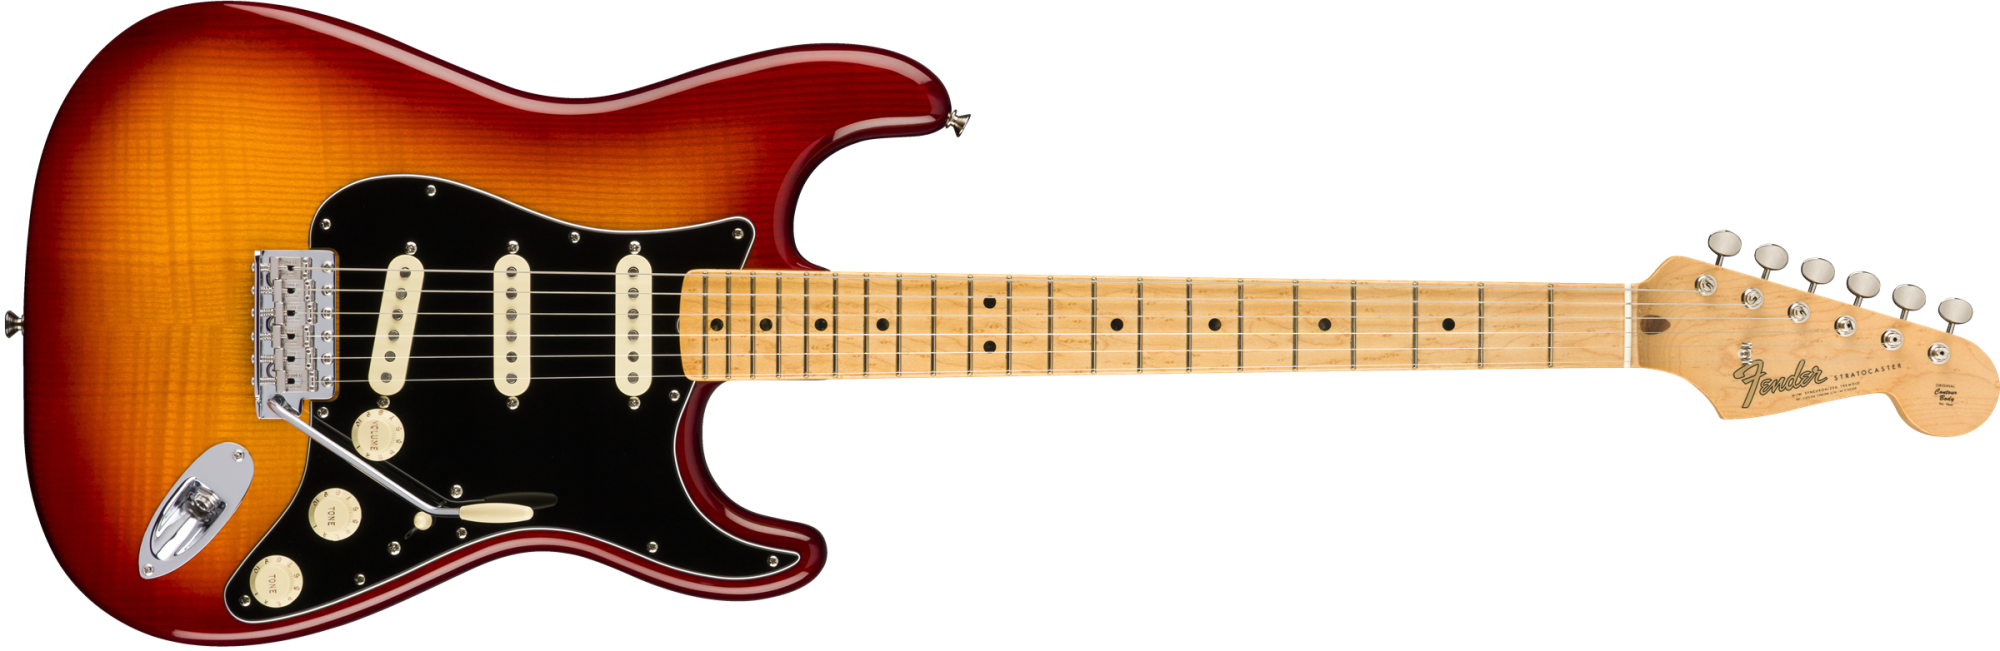 Fender Stratocaster Rarities Flame Ash Top Limited Ed.